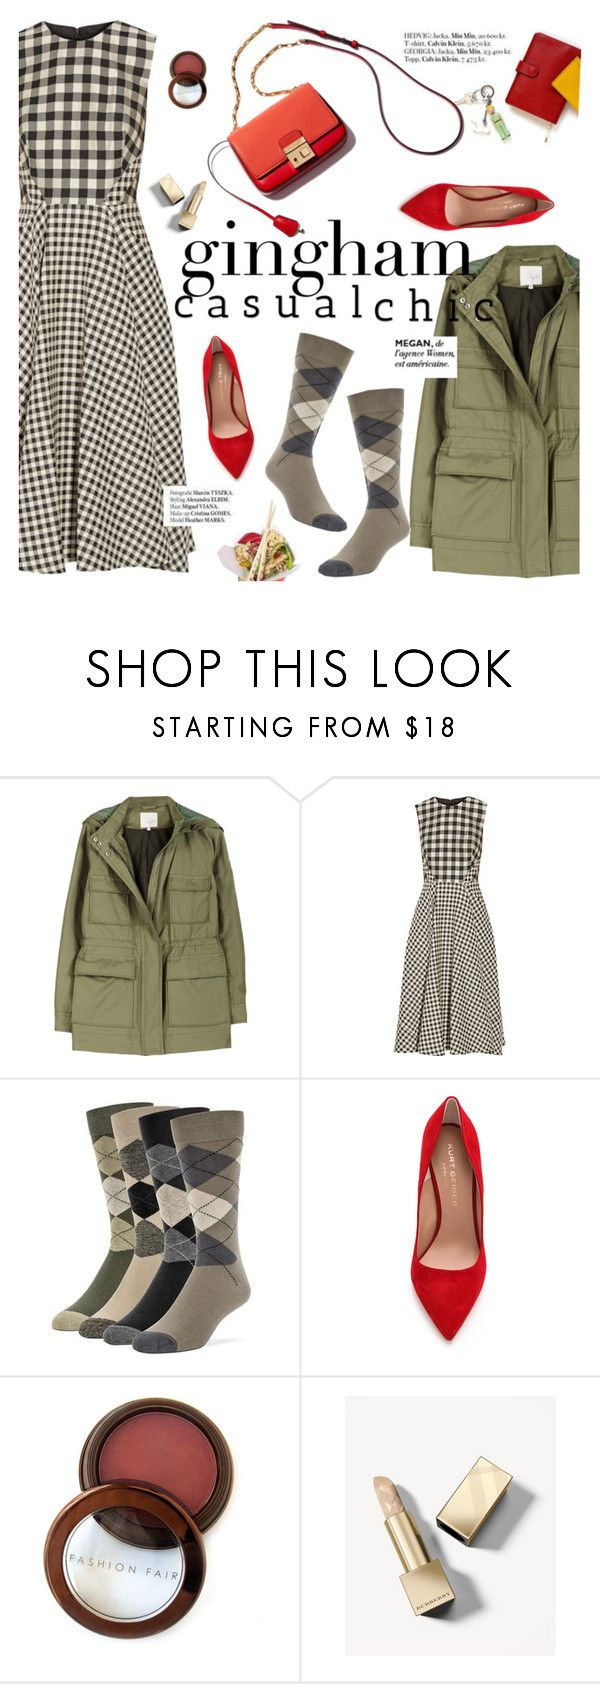 """Gingham casual chic"" by punnky ❤ liked on Polyvore featuring Joie, Lela Rose, Haute Hippie, Maryam Keyhani, Kurt Geiger, Fashion Fair, Burberry and PATH"